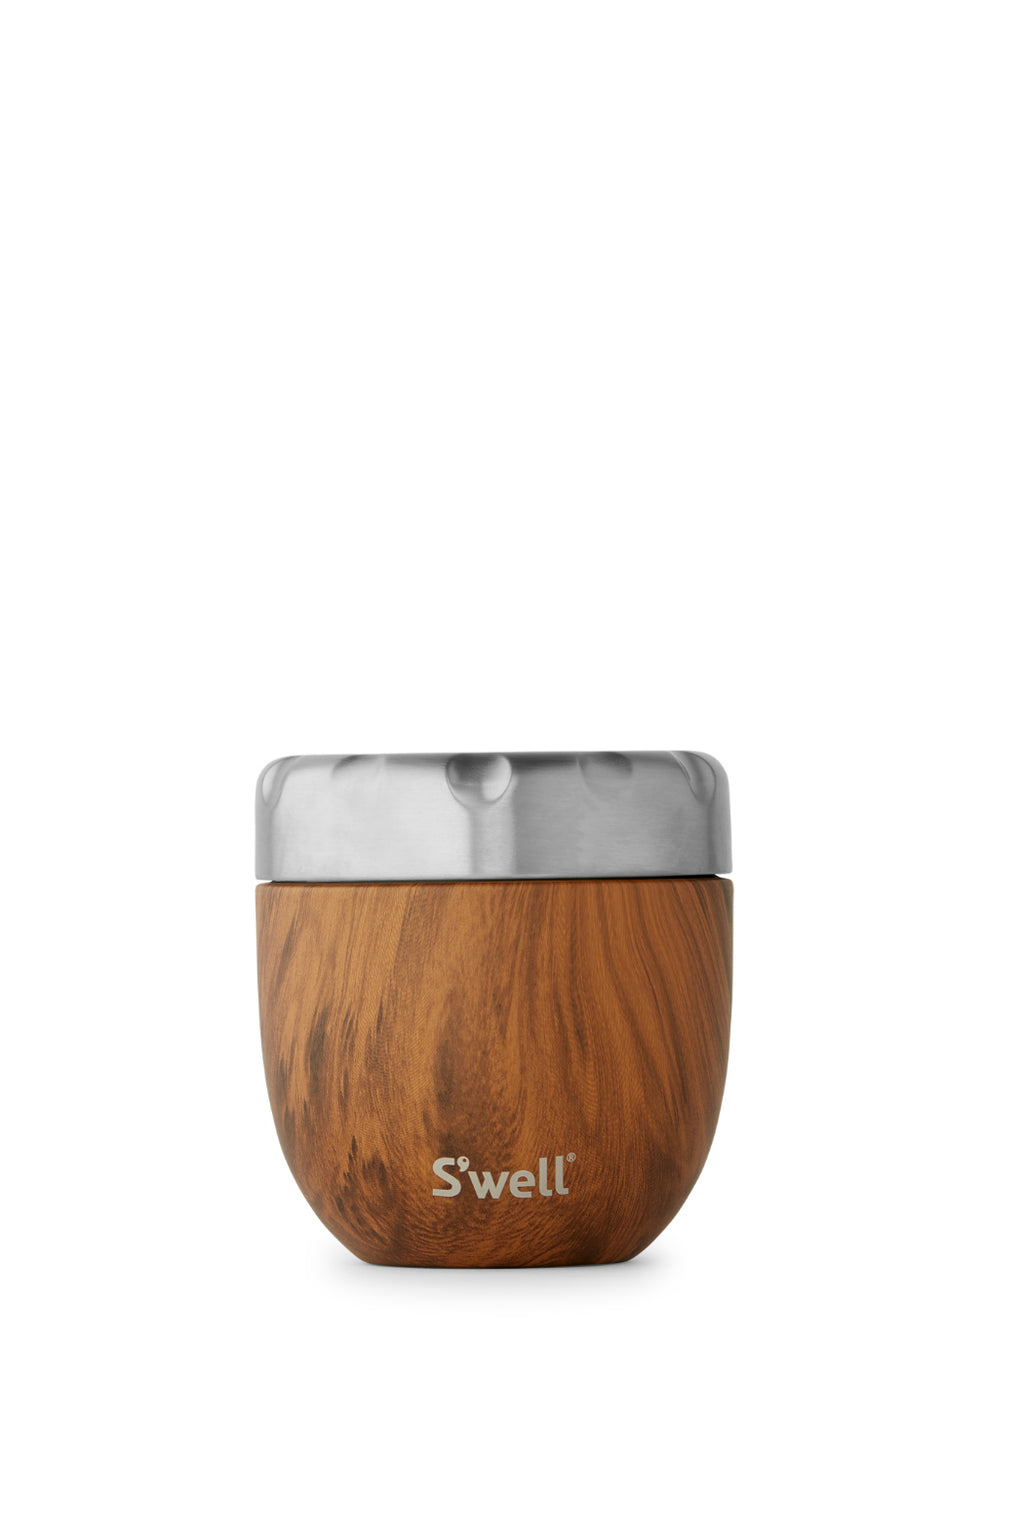 S'well Teakwood Eats™ Travel Bowl